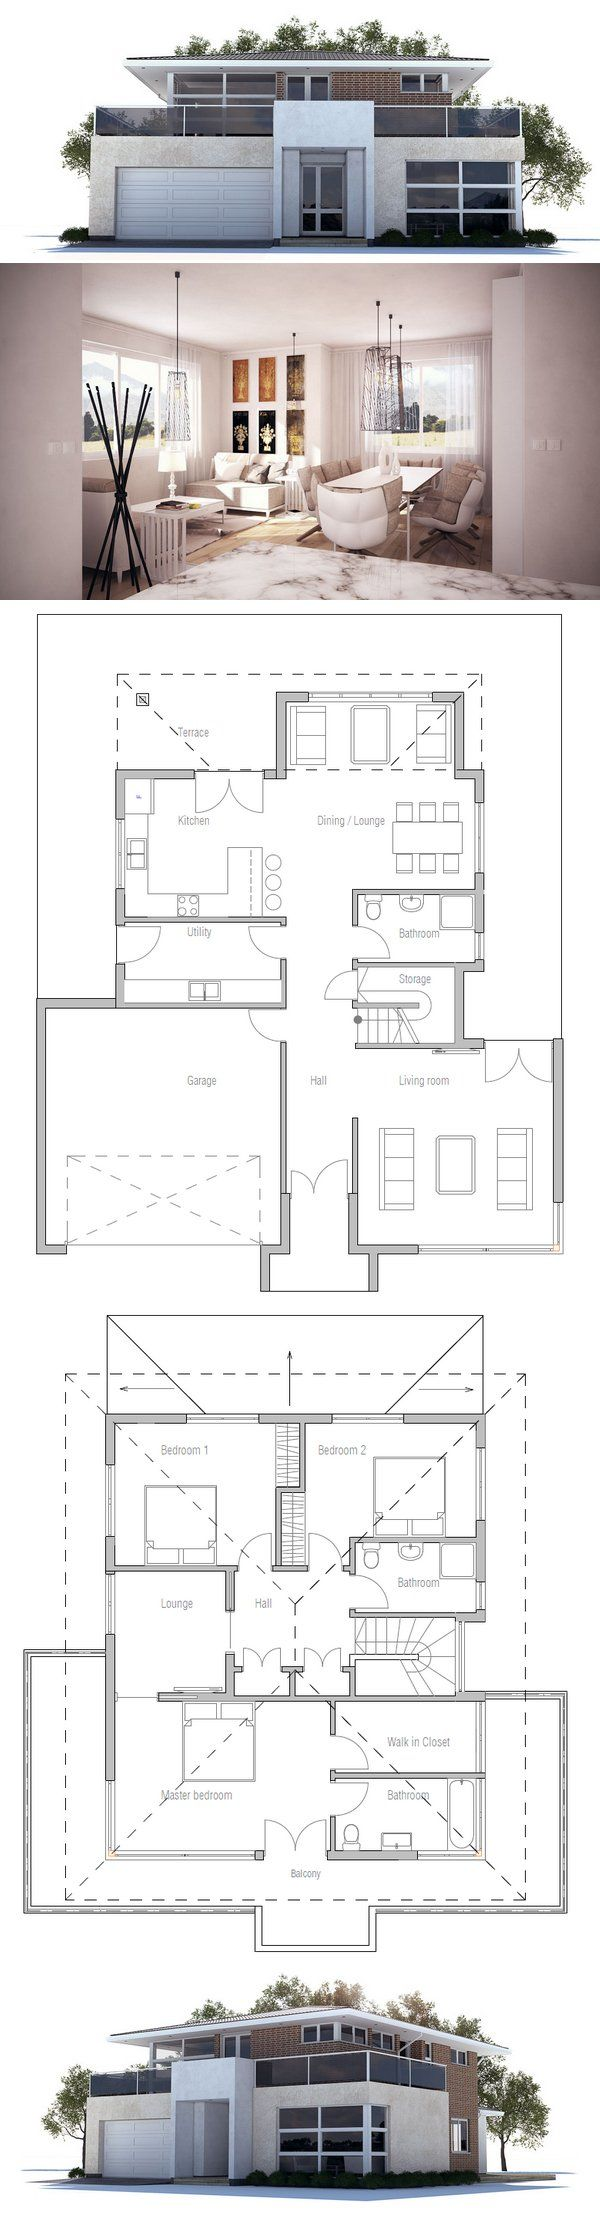 ae8f5b789f7ae6e1e6c2f308ea6c6adb modern house floor plans cool house plans best 25 modern house plans ideas on pinterest,New Contemporary House Plans